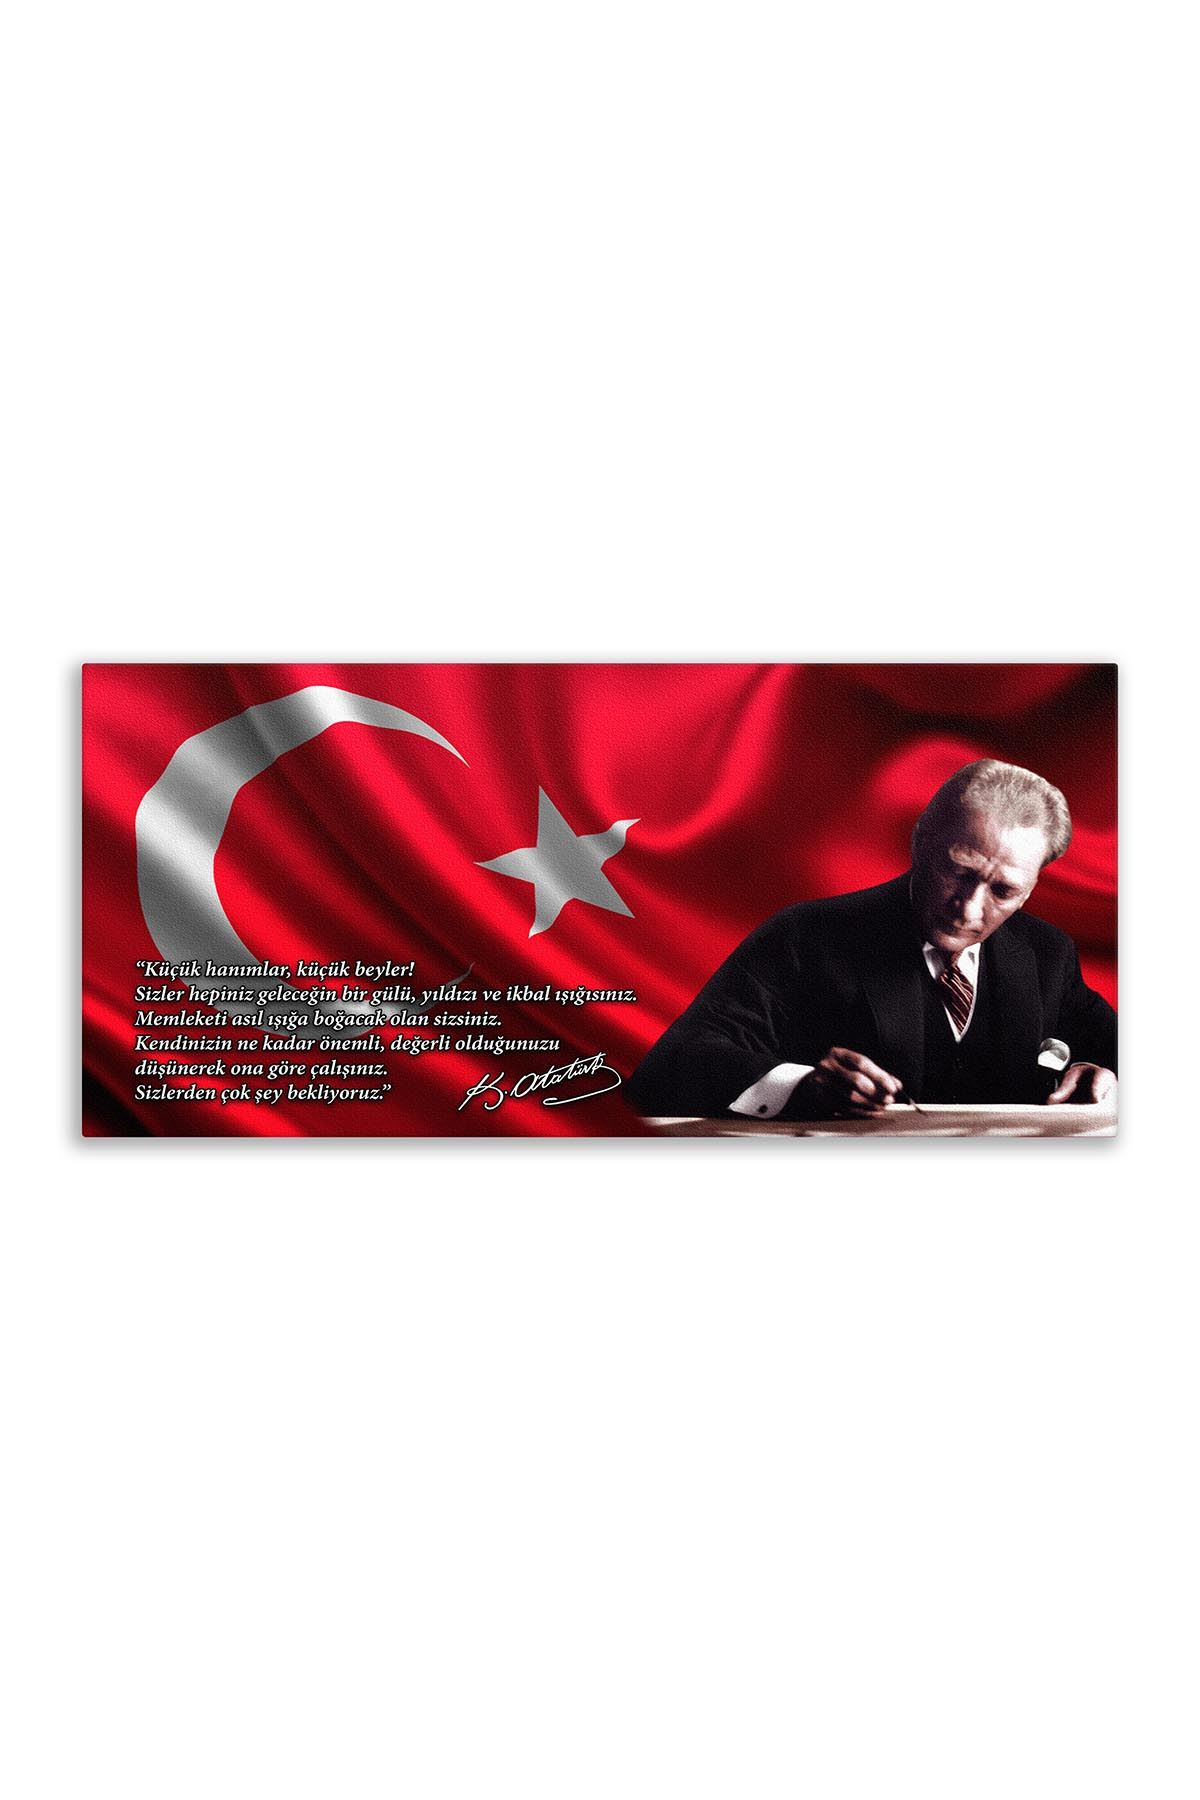 Atatürk Canvas Board | Printed Canvas Board | Customized Board |Digital Printing